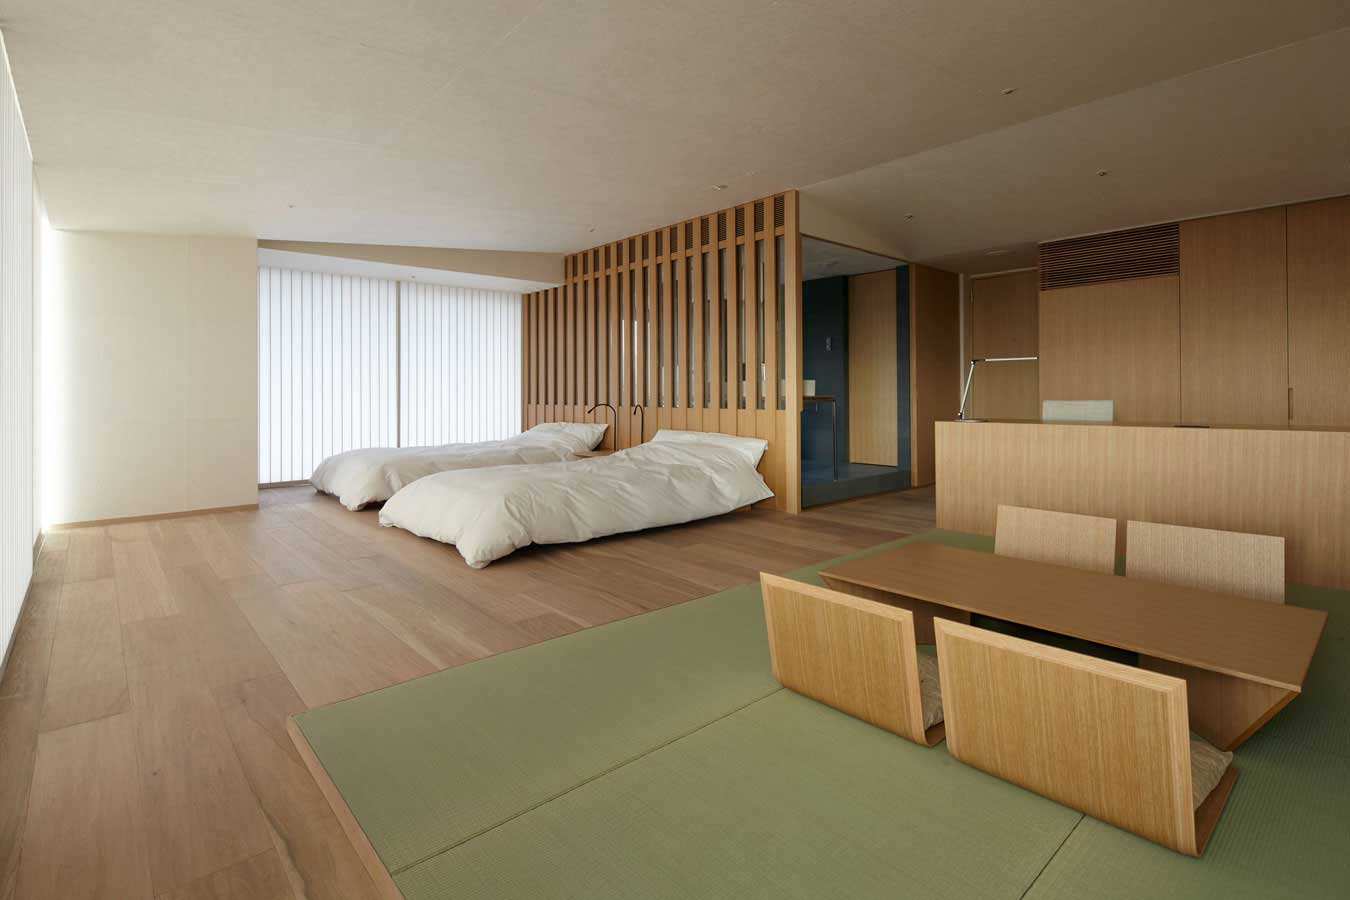 Modern Japanese Bedroom Design Modern Japanese Bedroom Design 9 Arrangement Enhancedhomesorg